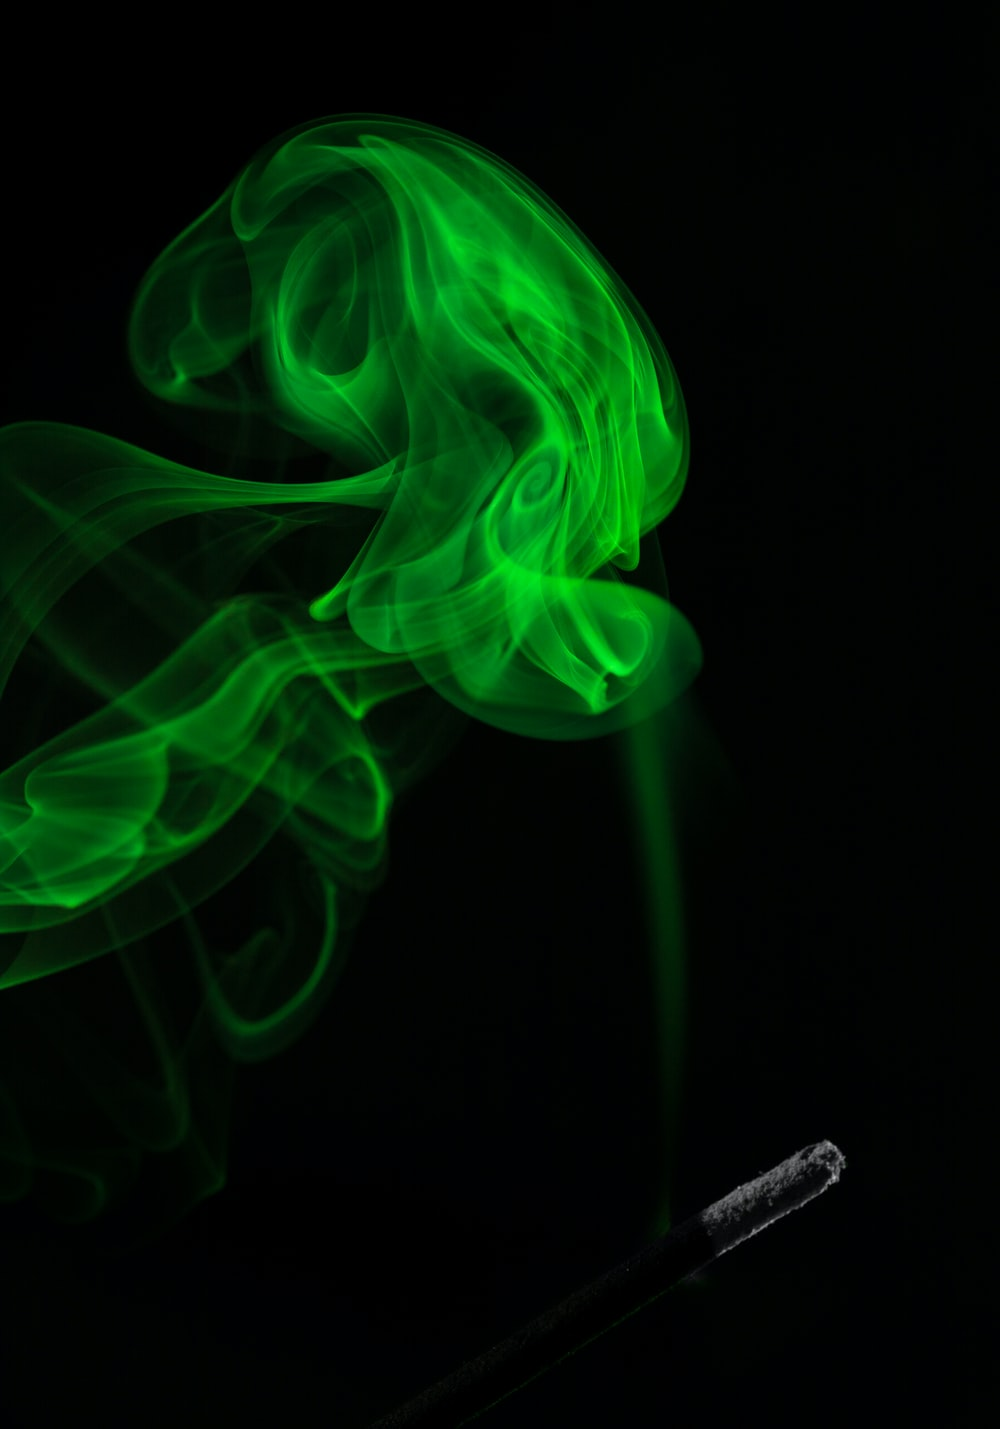 green smoke on dim light